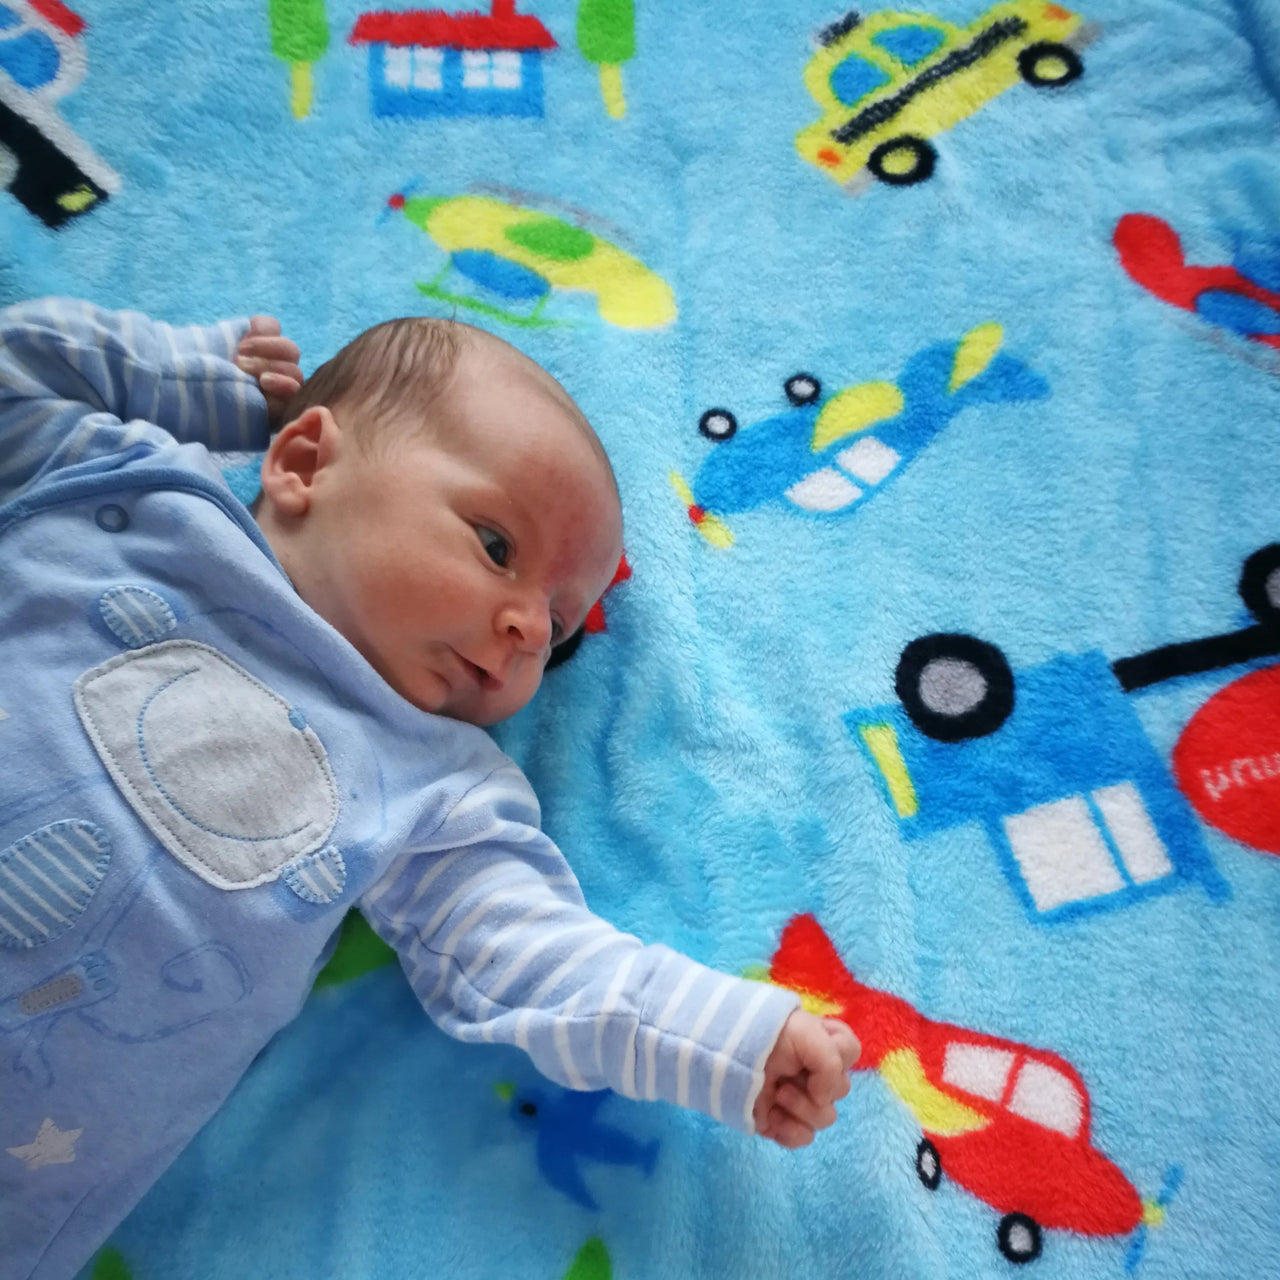 Transport Baby Blanket (Blue) - Kids Room Decor | Toys Gifts | Childrens Interiors | Rooms for Rascals